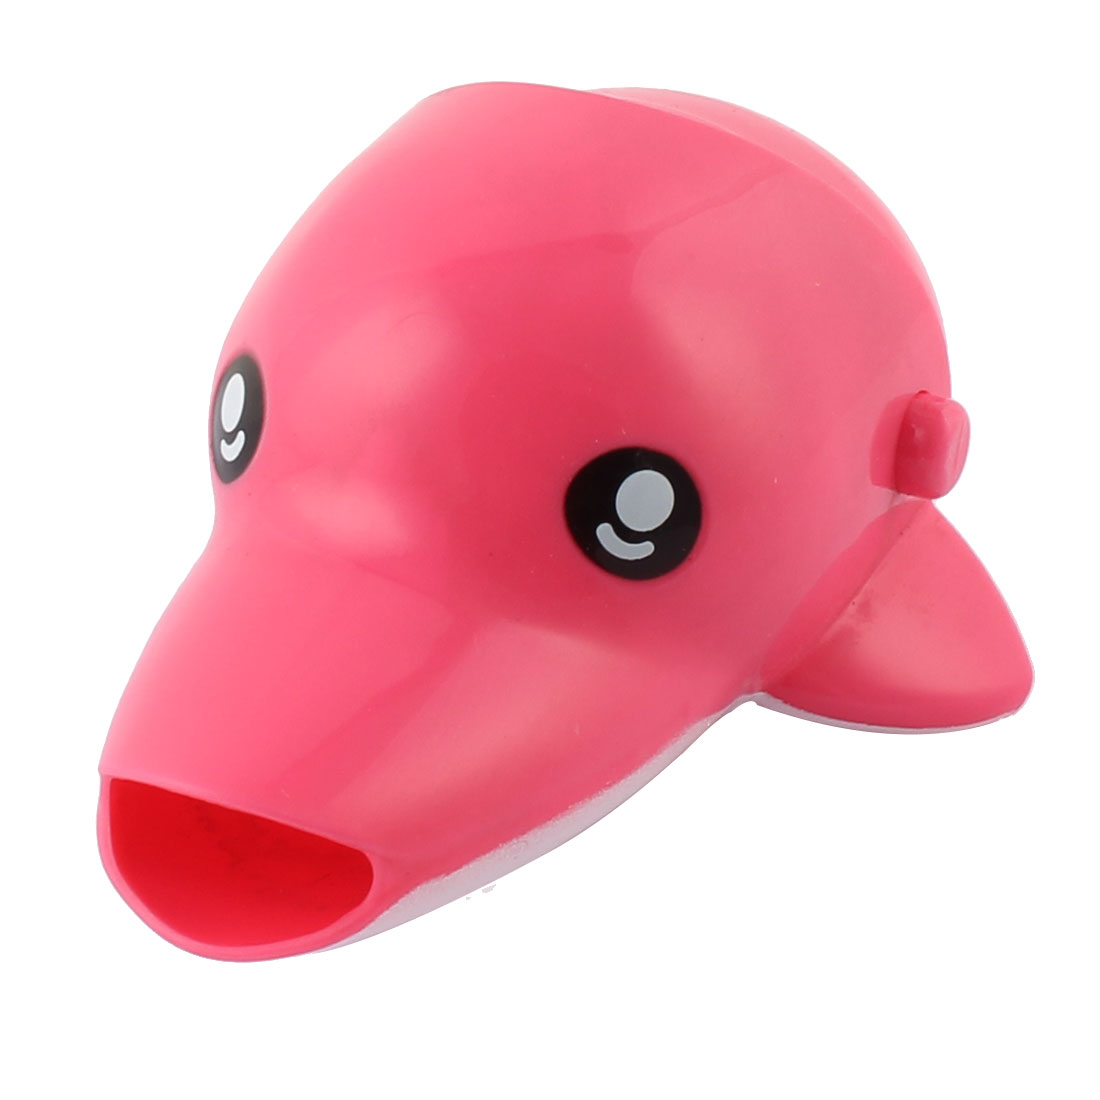 Kitchen Bathroom Silicone Dolphin Shaped Detachable Basin Tap Faucet Extender Pink